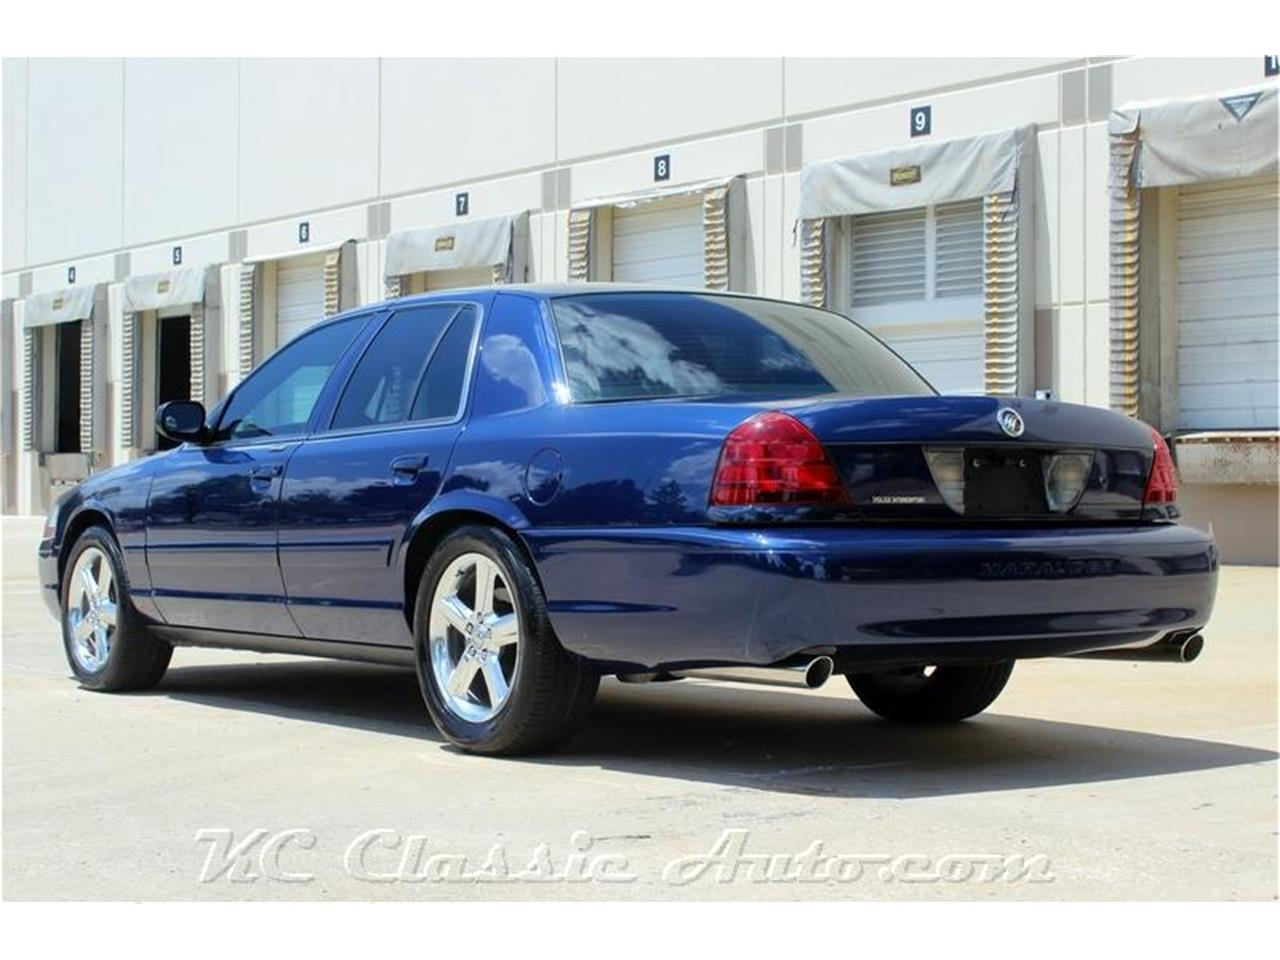 2003 Mercury Marauder for sale in Lenexa, KS – photo 5